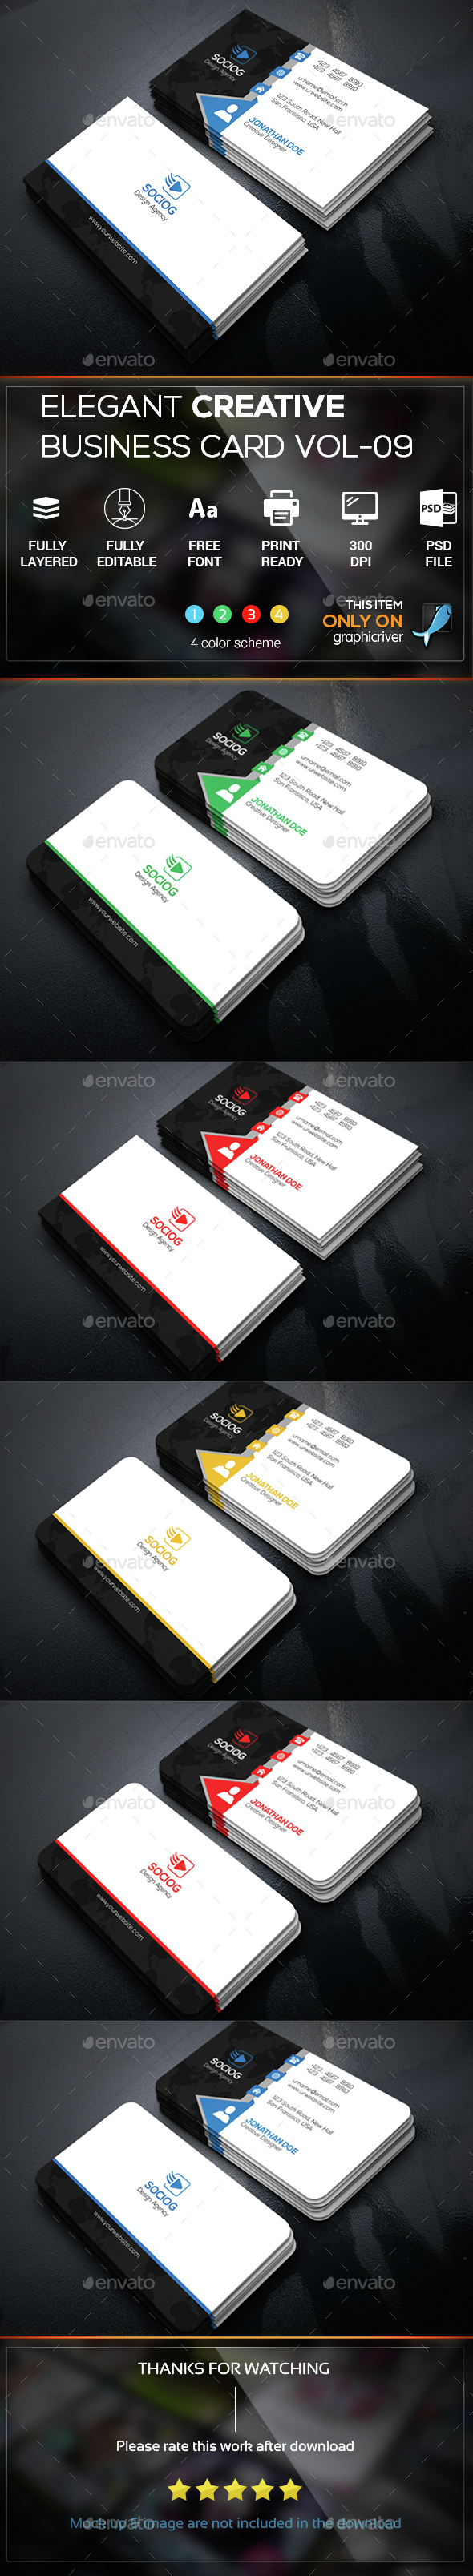 Elegant creative business card vol 09 business card pinterest elegant creative business card vol 09 reheart Choice Image